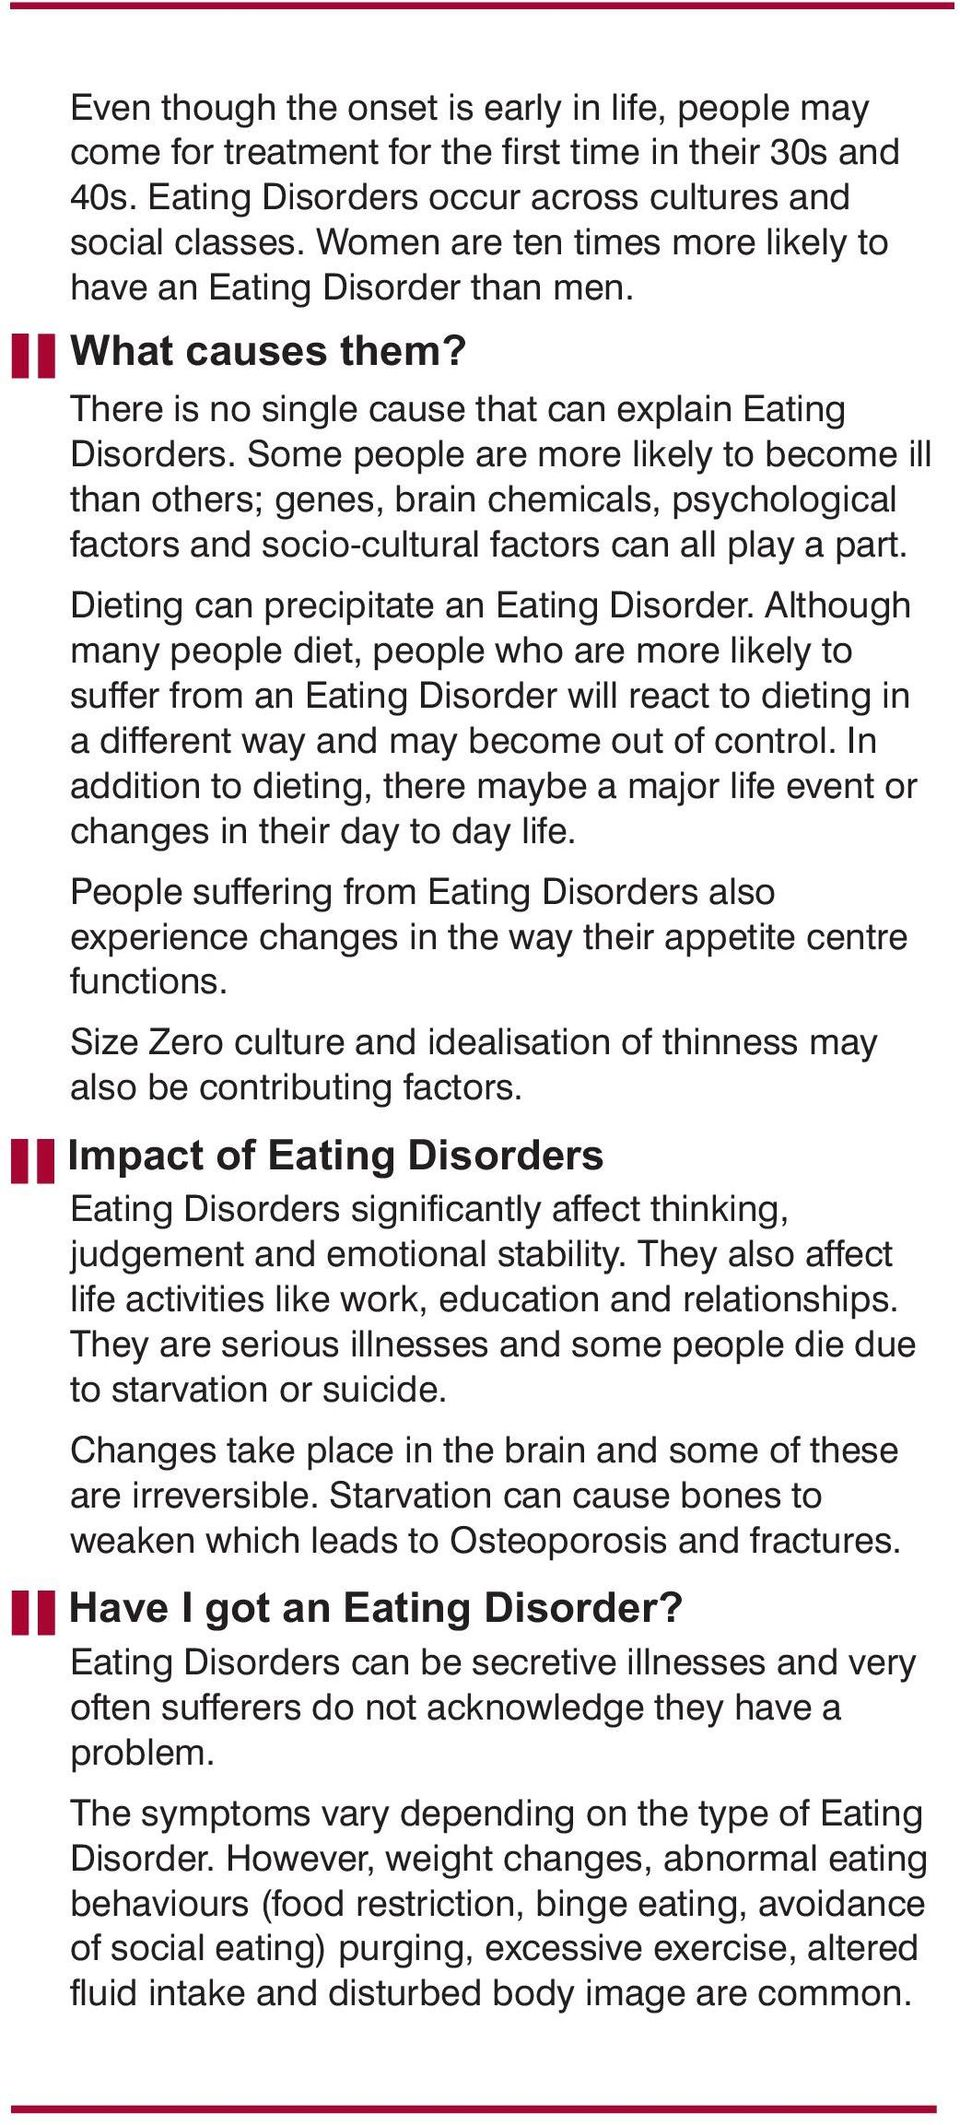 Some people are more likely to become ill than others; genes, brain chemicals, psychological factors and socio-cultural factors can all play a part. Dieting can precipitate an Eating Disorder.